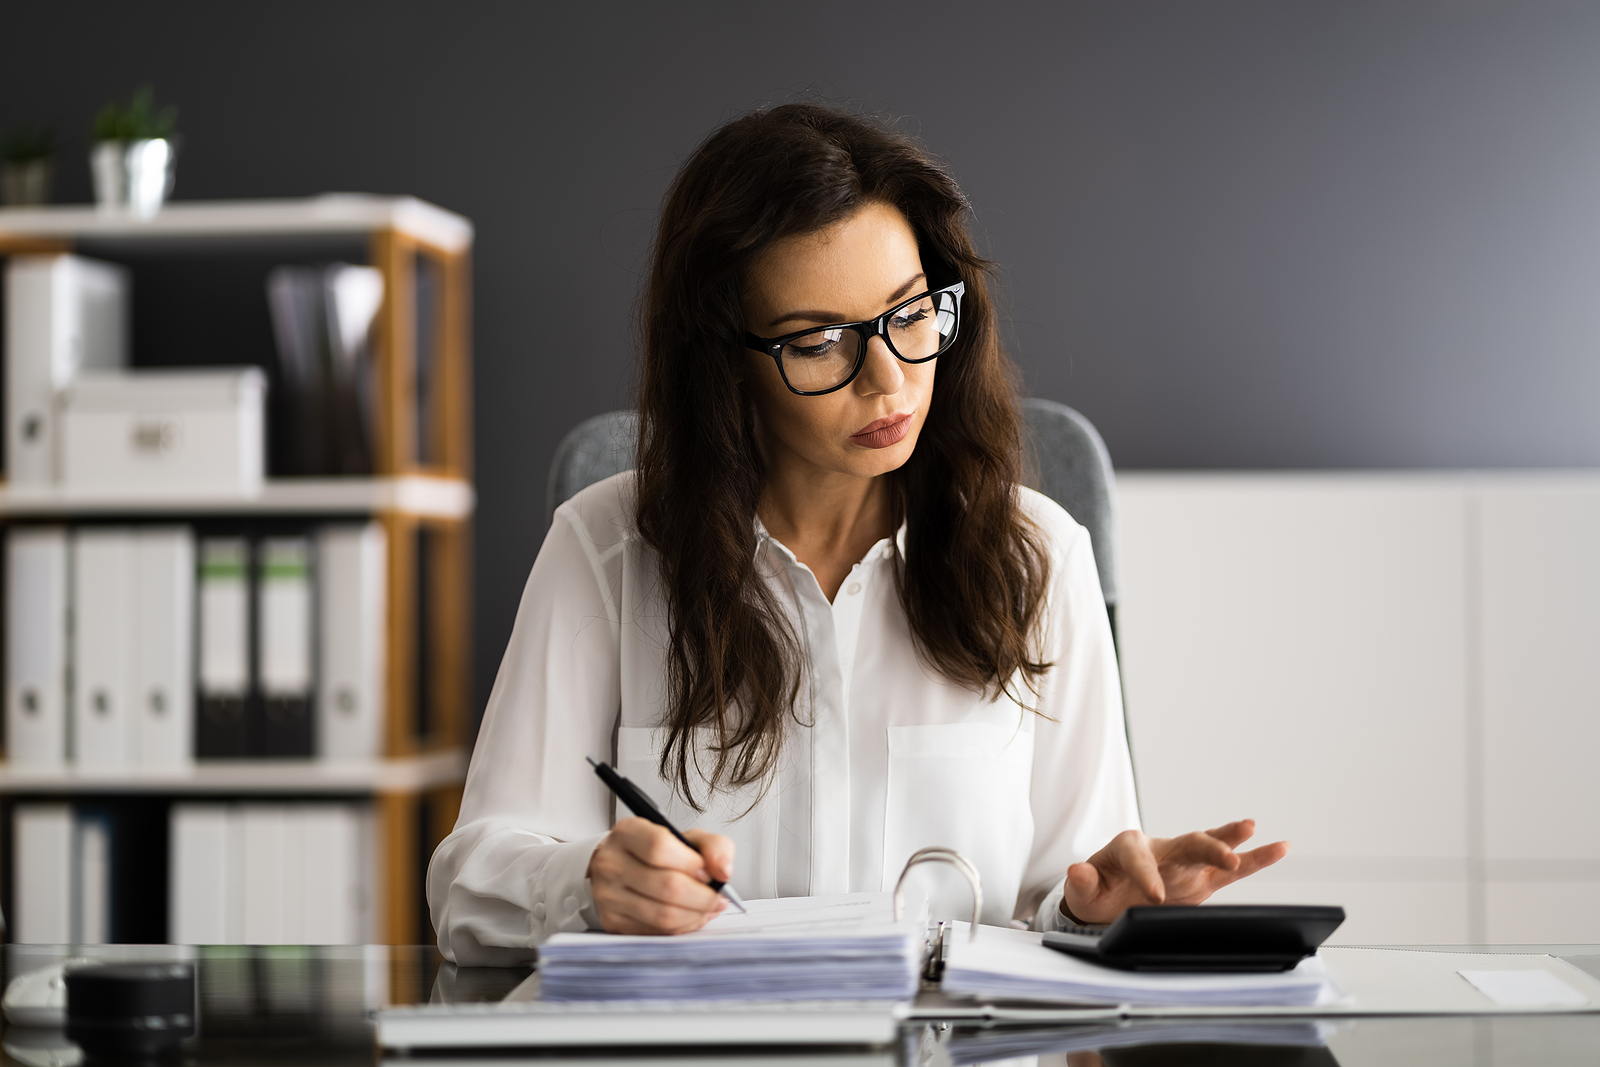 Do Accounting Firms Always Prefer a Master's over a Bachelor's?